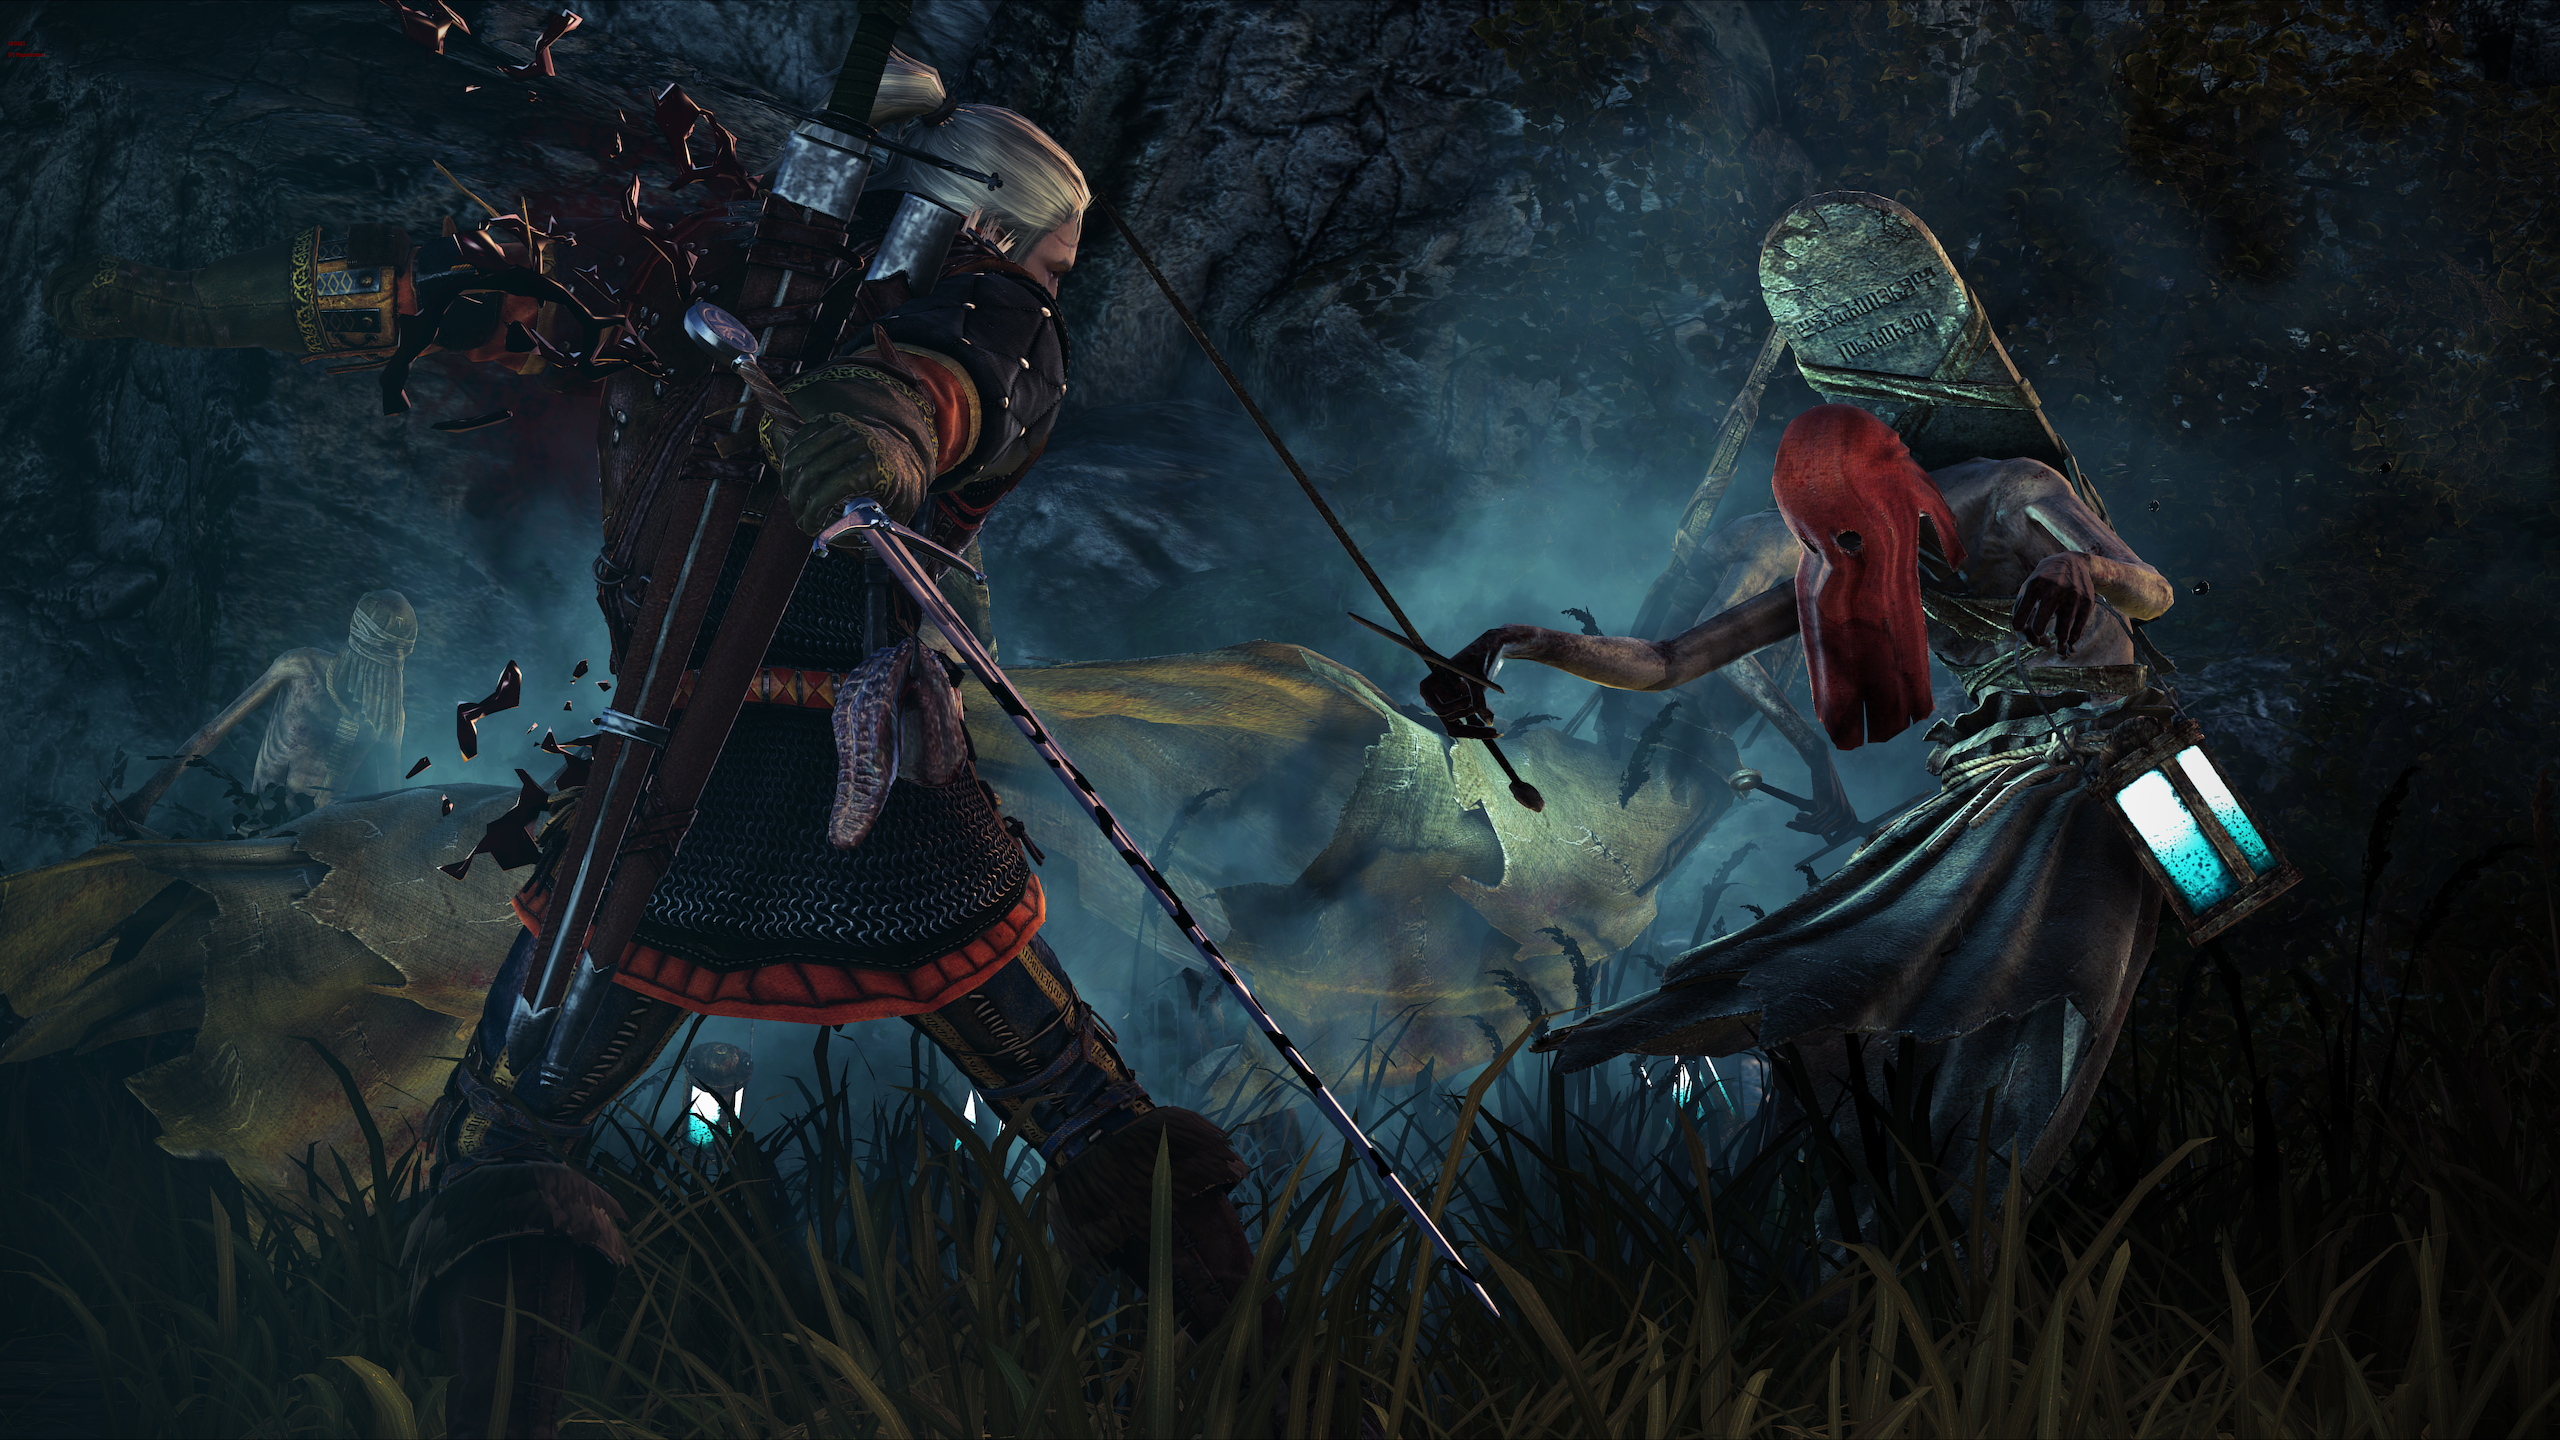 deathmetal.png - Witcher 2: Assassins of Kings, the